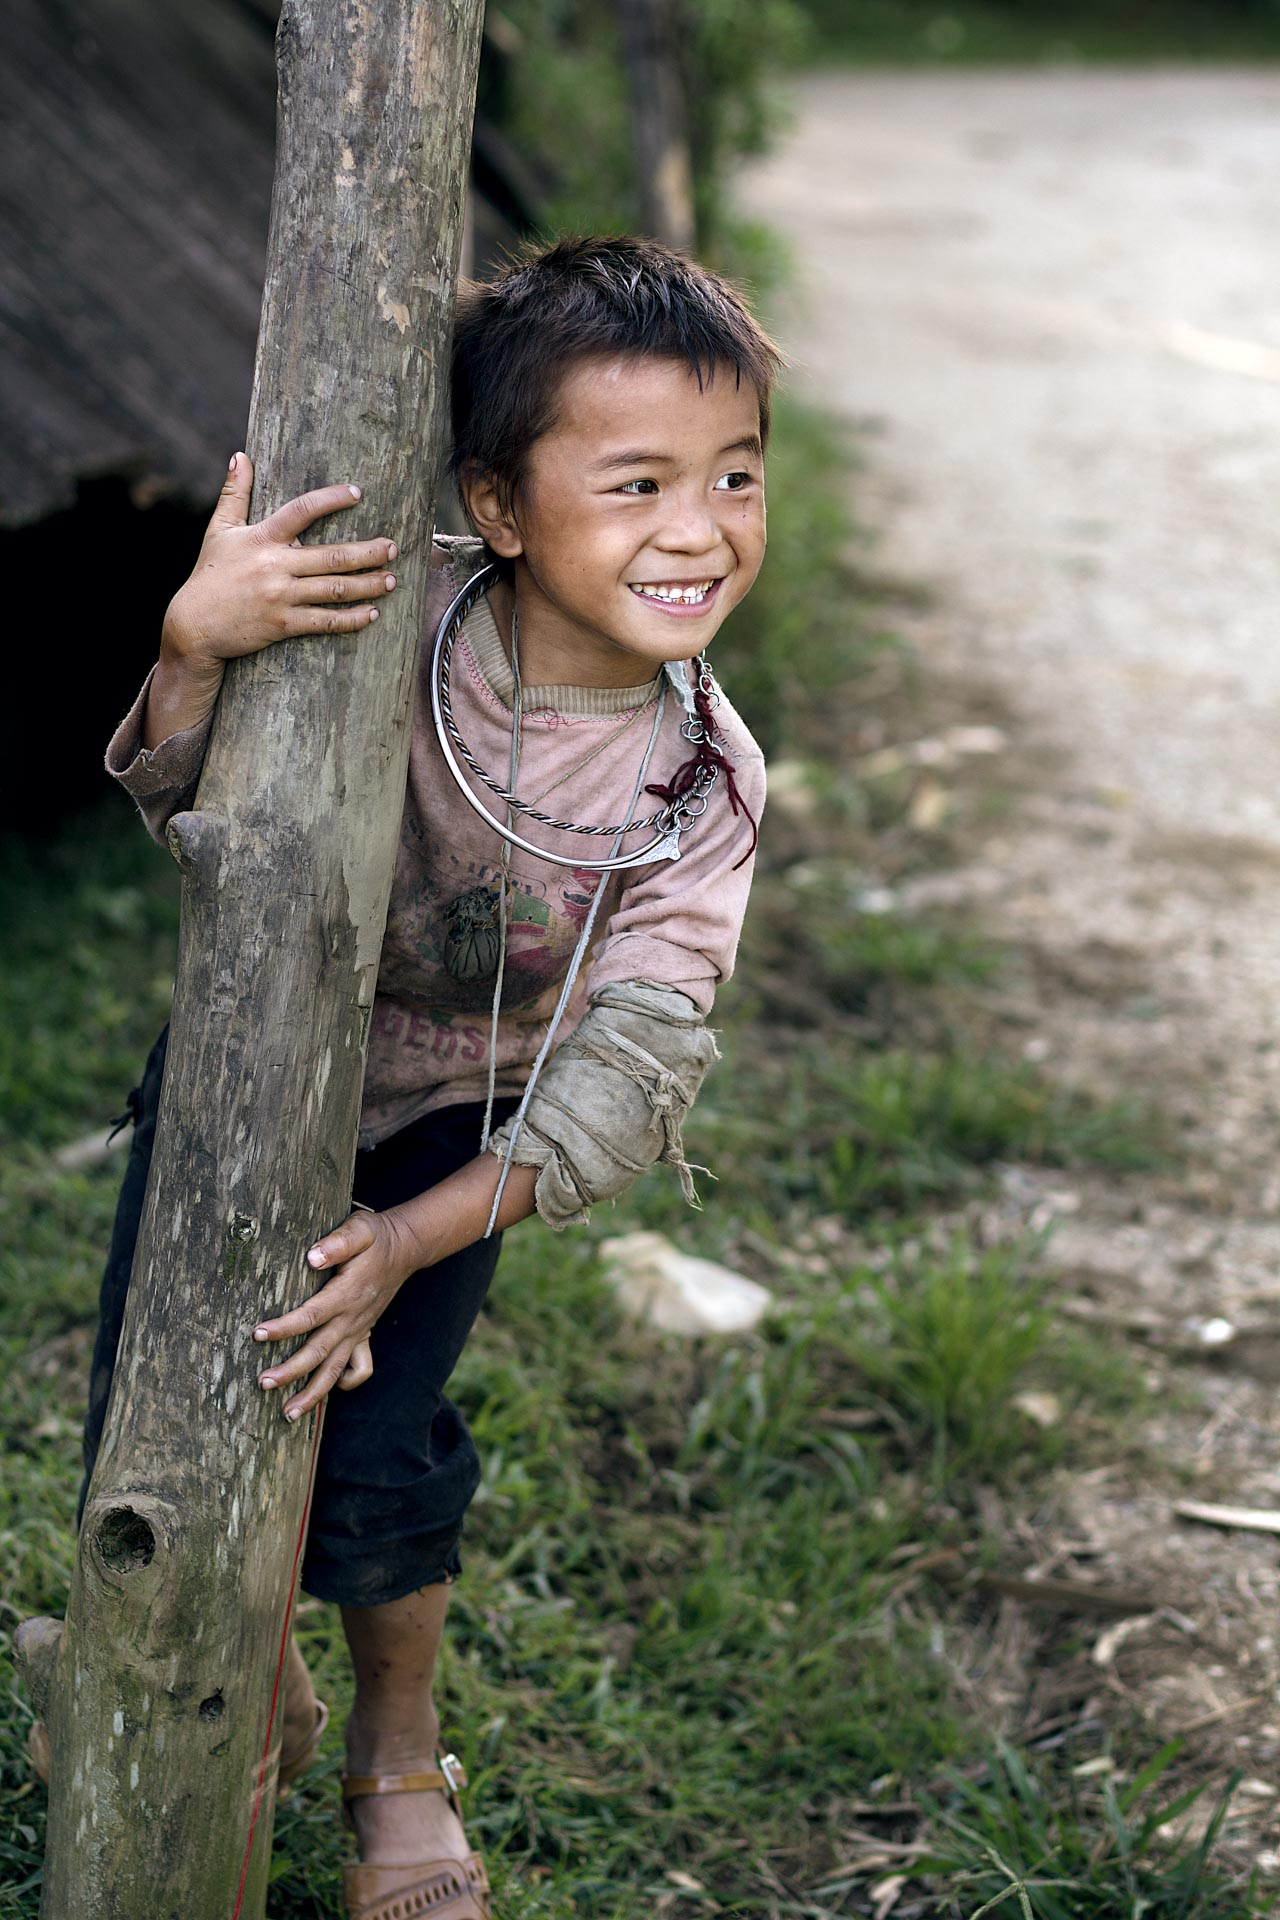 Hmong child in Sa Pa. Vietnam